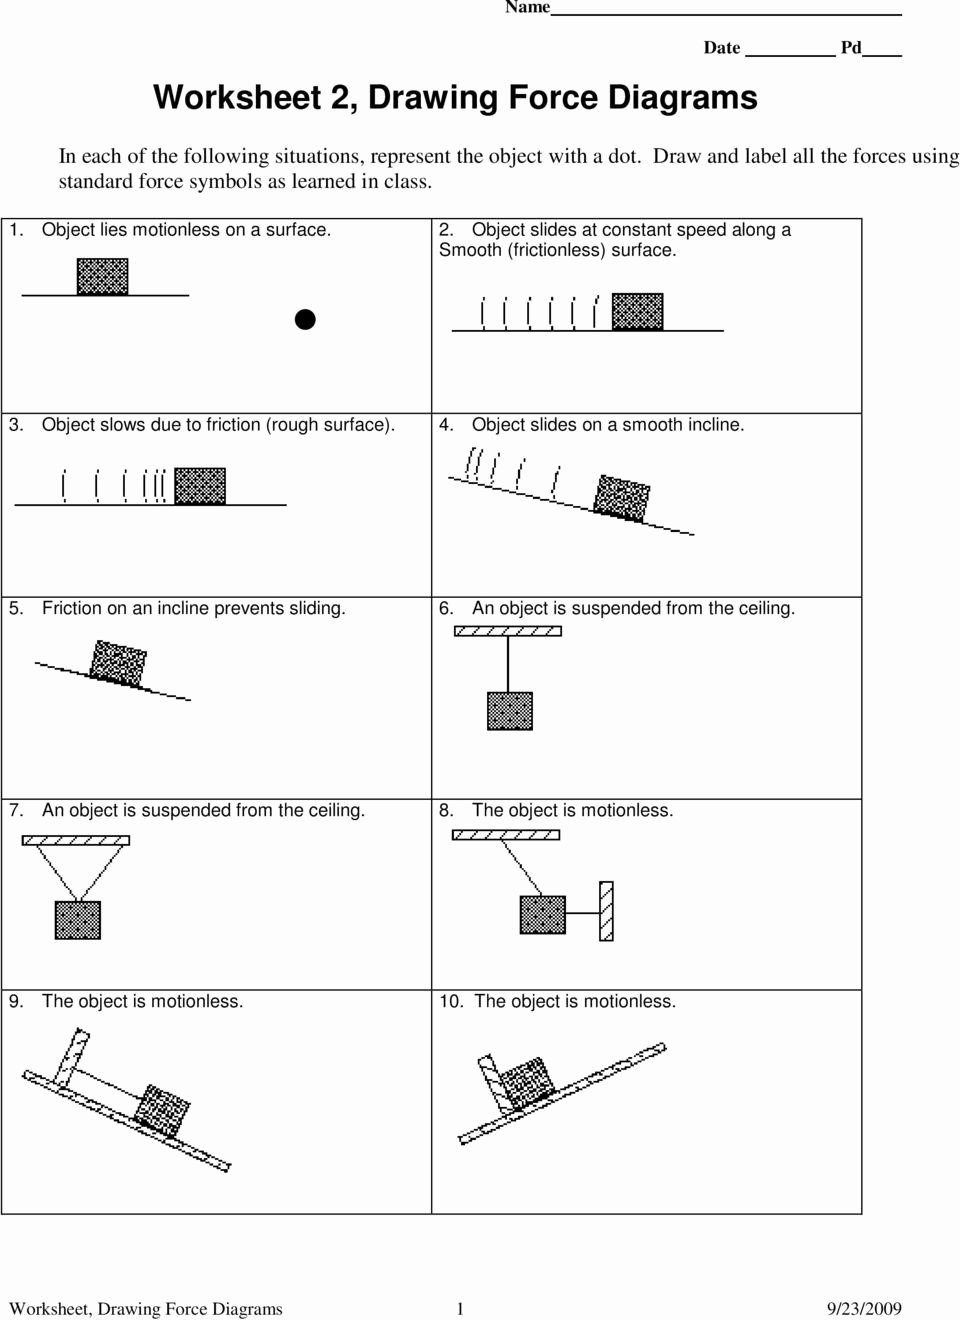 Forces Worksheet 1 Answer Key Lovely Free Particle Model Worksheet 1a force Diagrams Answer Key